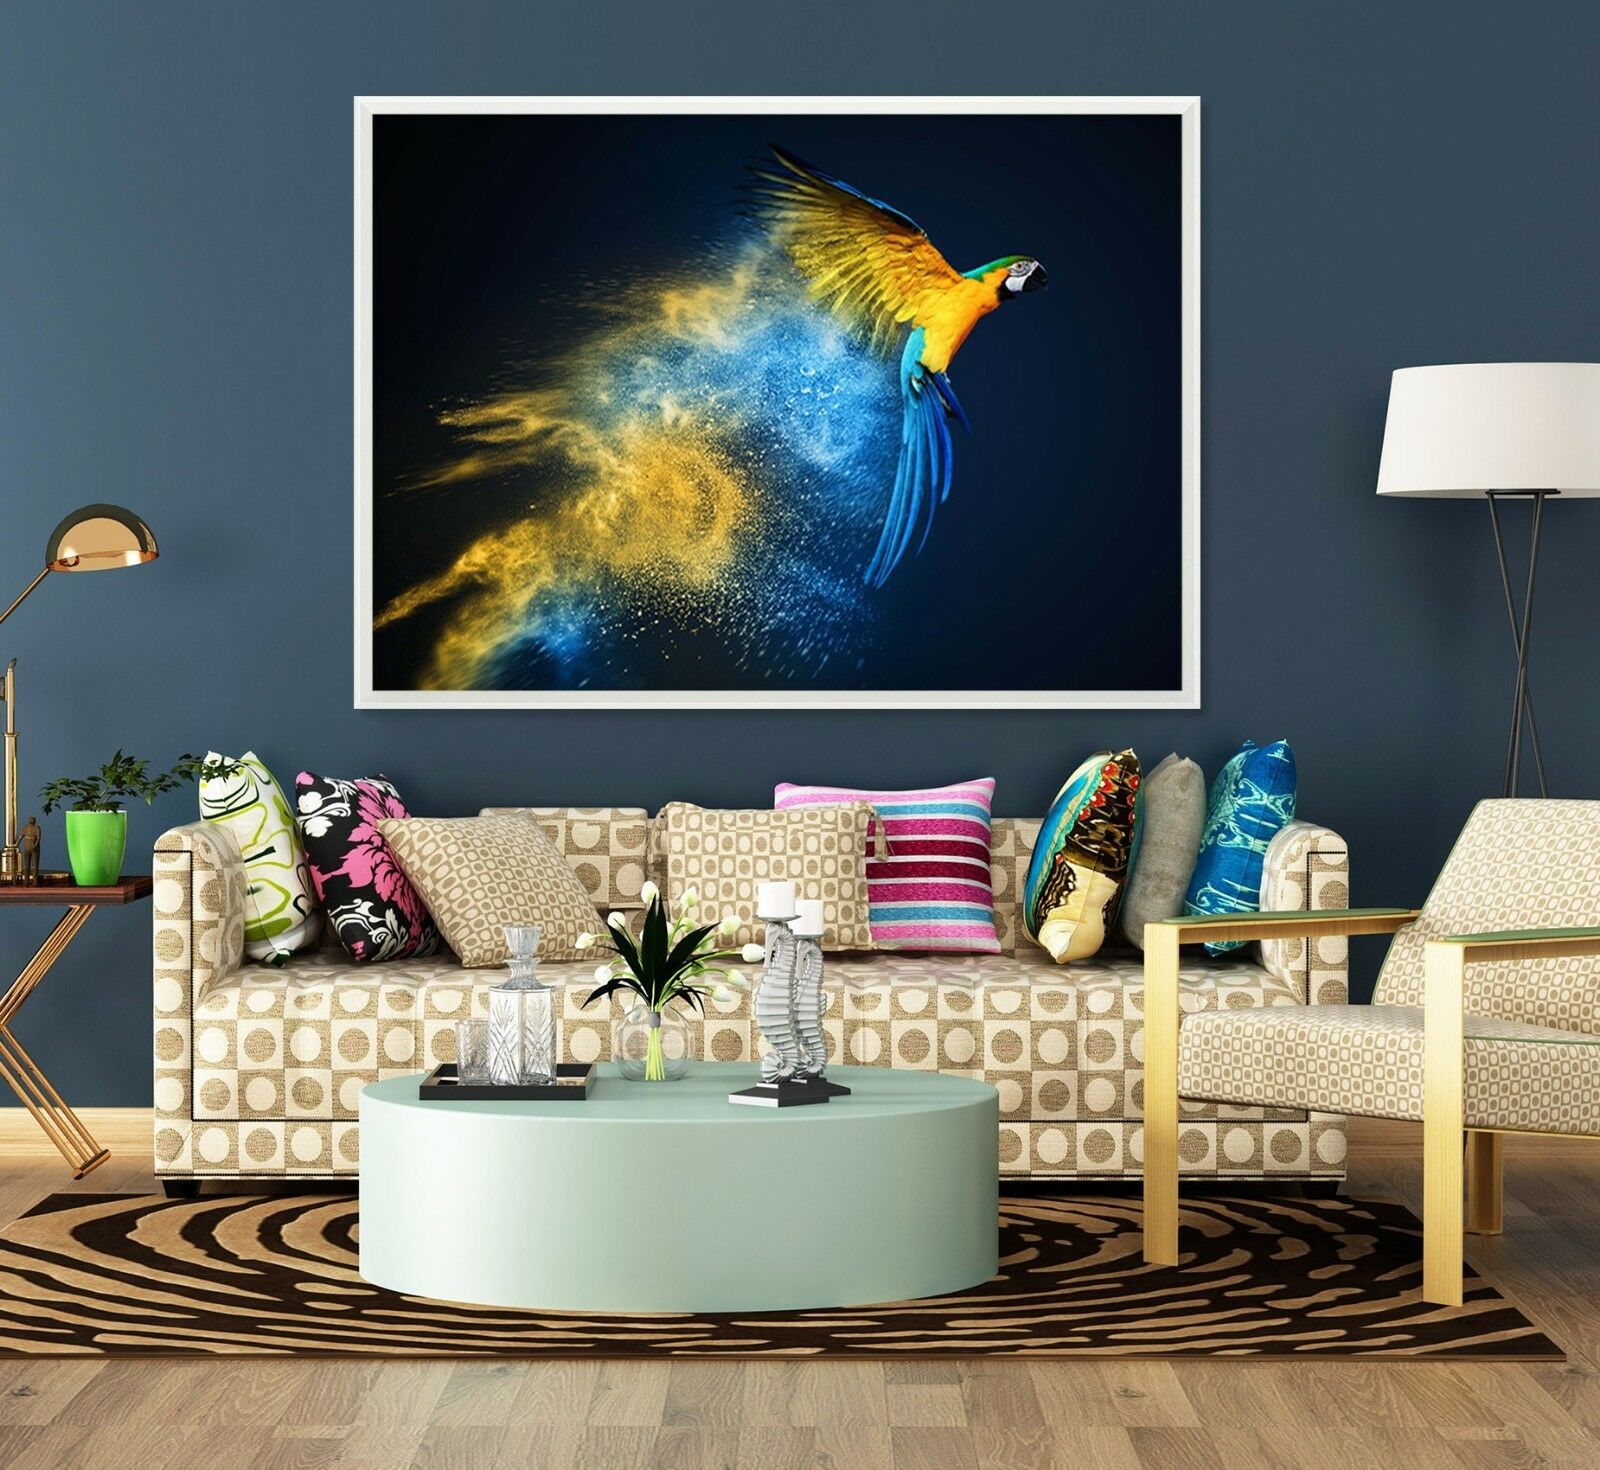 3D Parrot Paint Poster 8 Framed Poster Home Decor Drucken Painting Kunst WandPapier